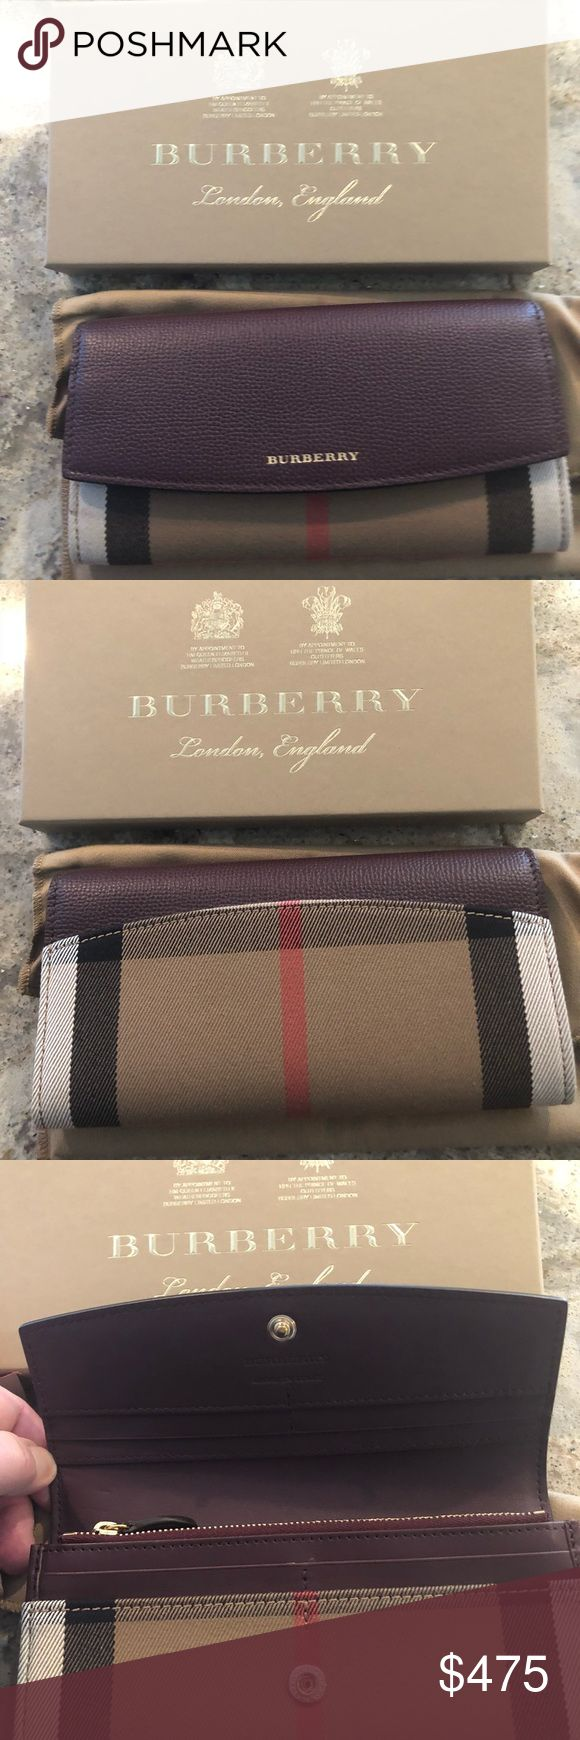 Burberry Leather Porter Continental Wallet Burberry House Check Horseshoe Leather Porter Wallet. Color is Tan & Mahogany Red.  Brand New with Tags, never used. Purchased in the Michigan Avenue store in Chicago. Comes with box, tags, dustbag & receipt. Burberry Bags Wallets